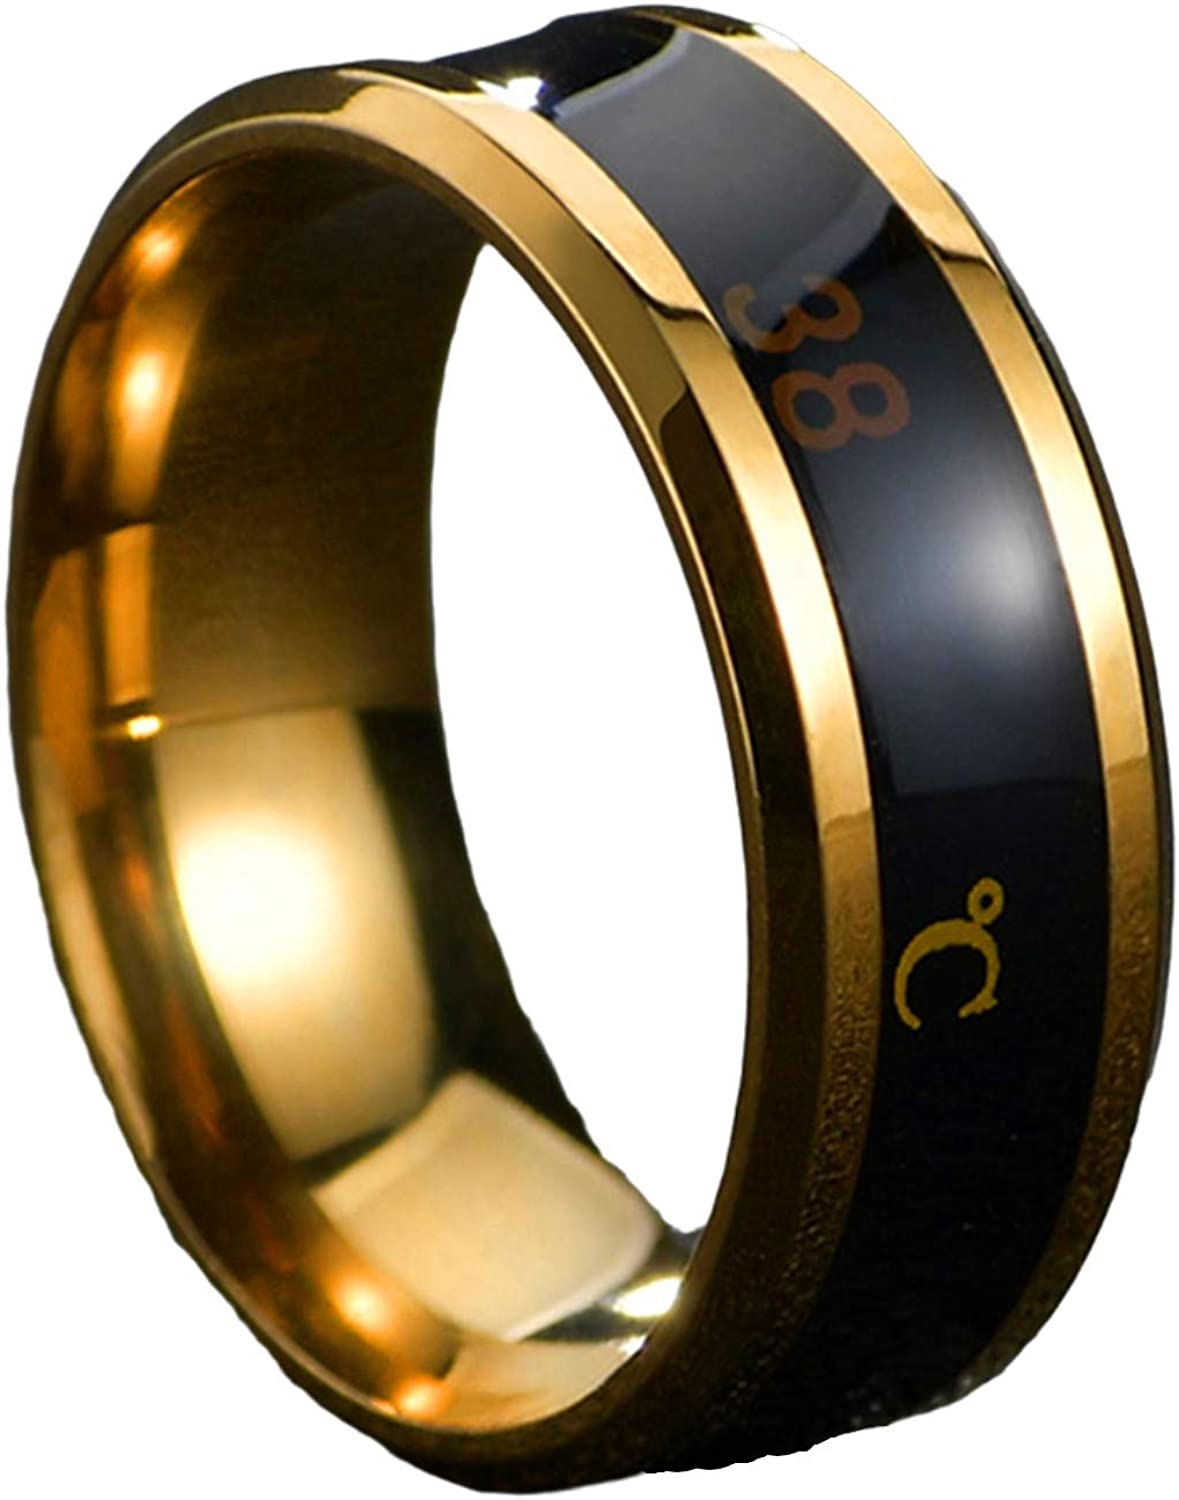 Aite Babe 8mm Mens Rings Stainless Steel Temperature Monitor Ring, Jewelry Colorful Digital Ring, Couple Rings Wedding Band for Men and Women Sizer 6-11